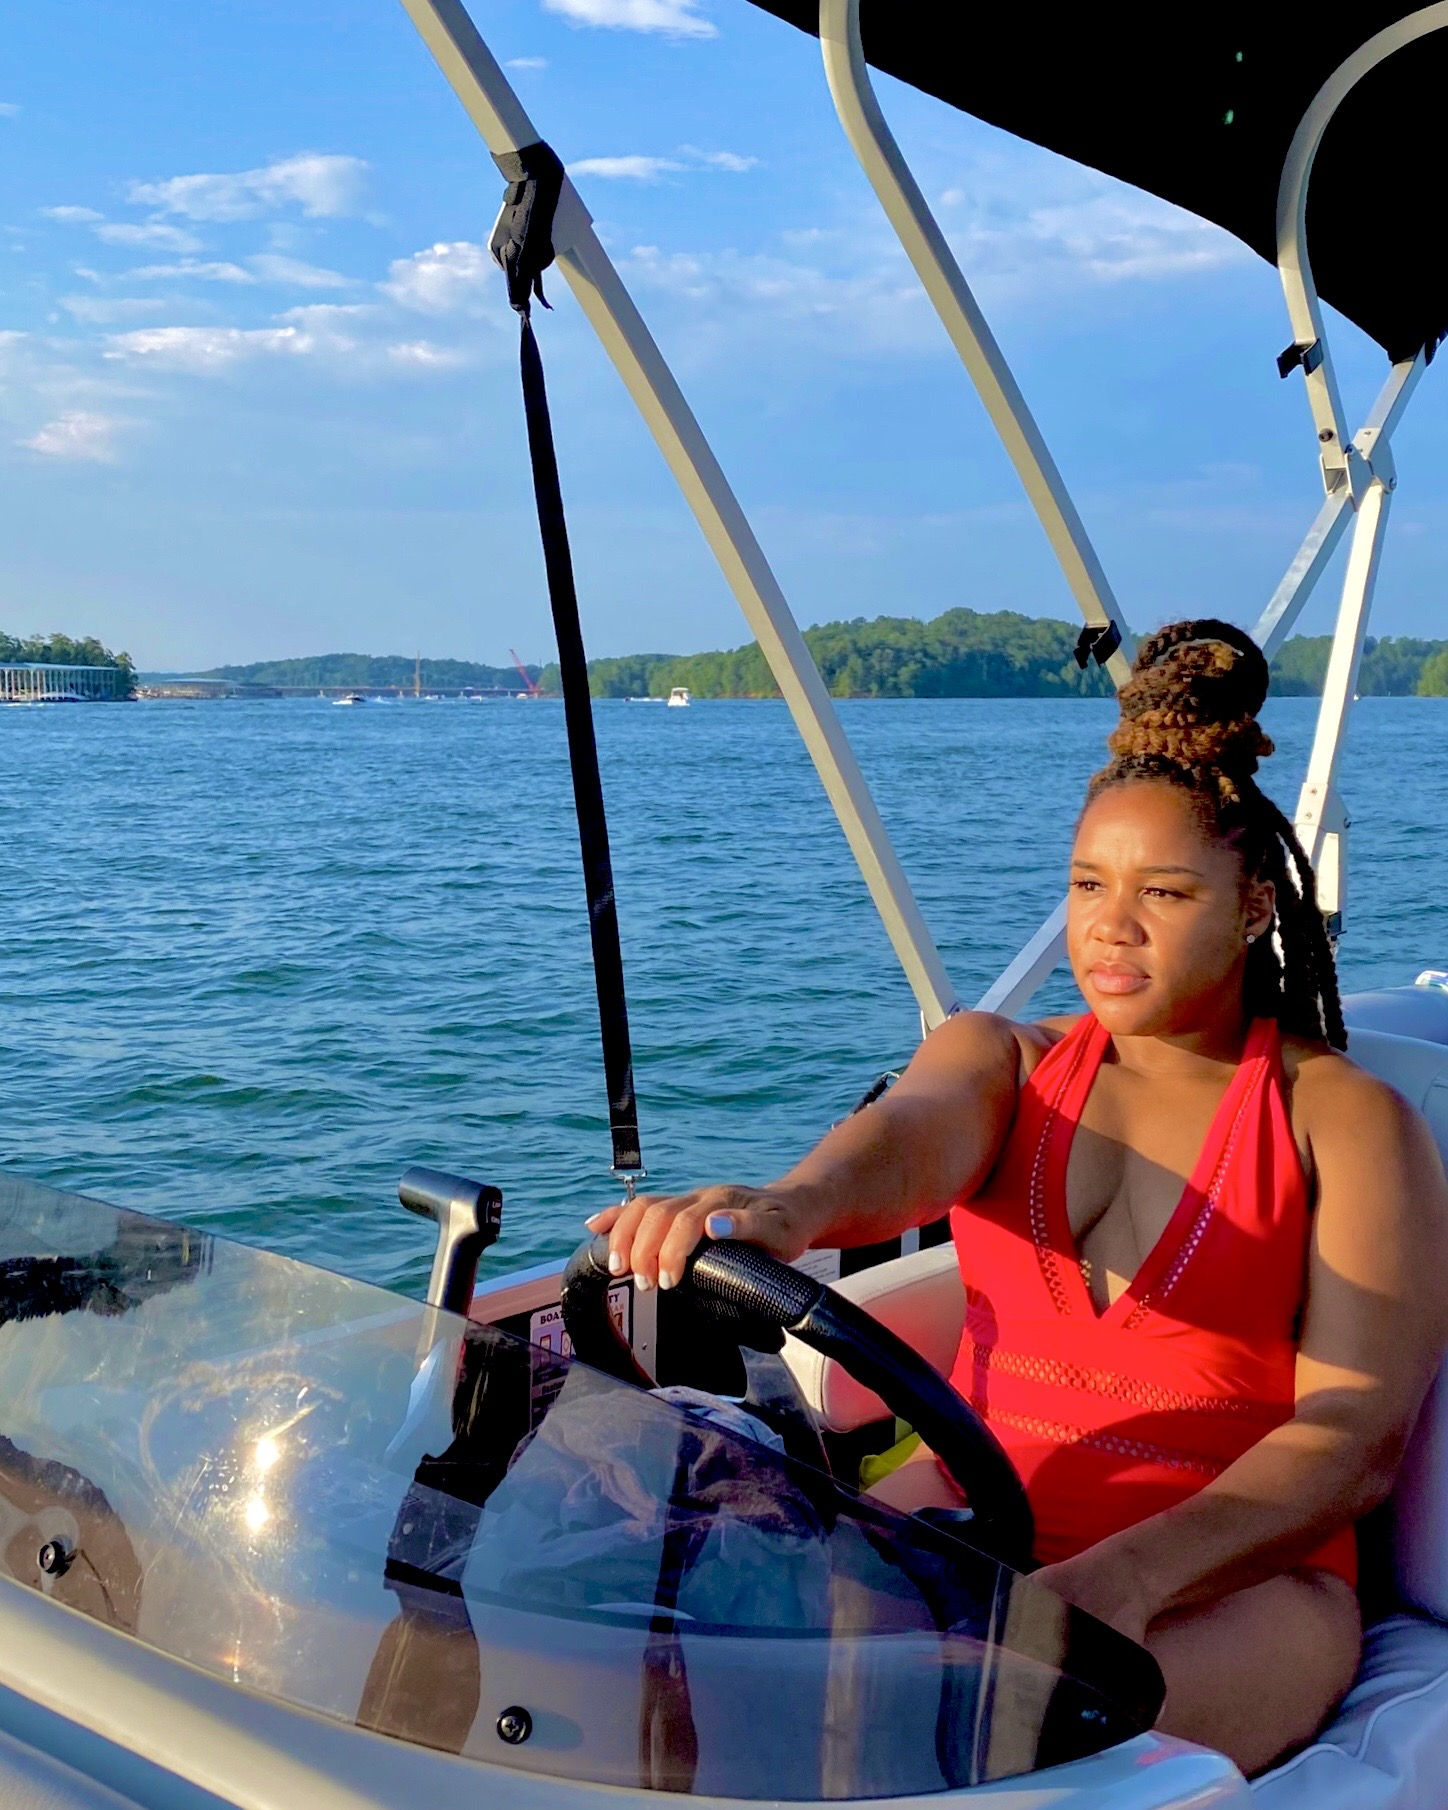 Lake Lanier Boat Rental- driving